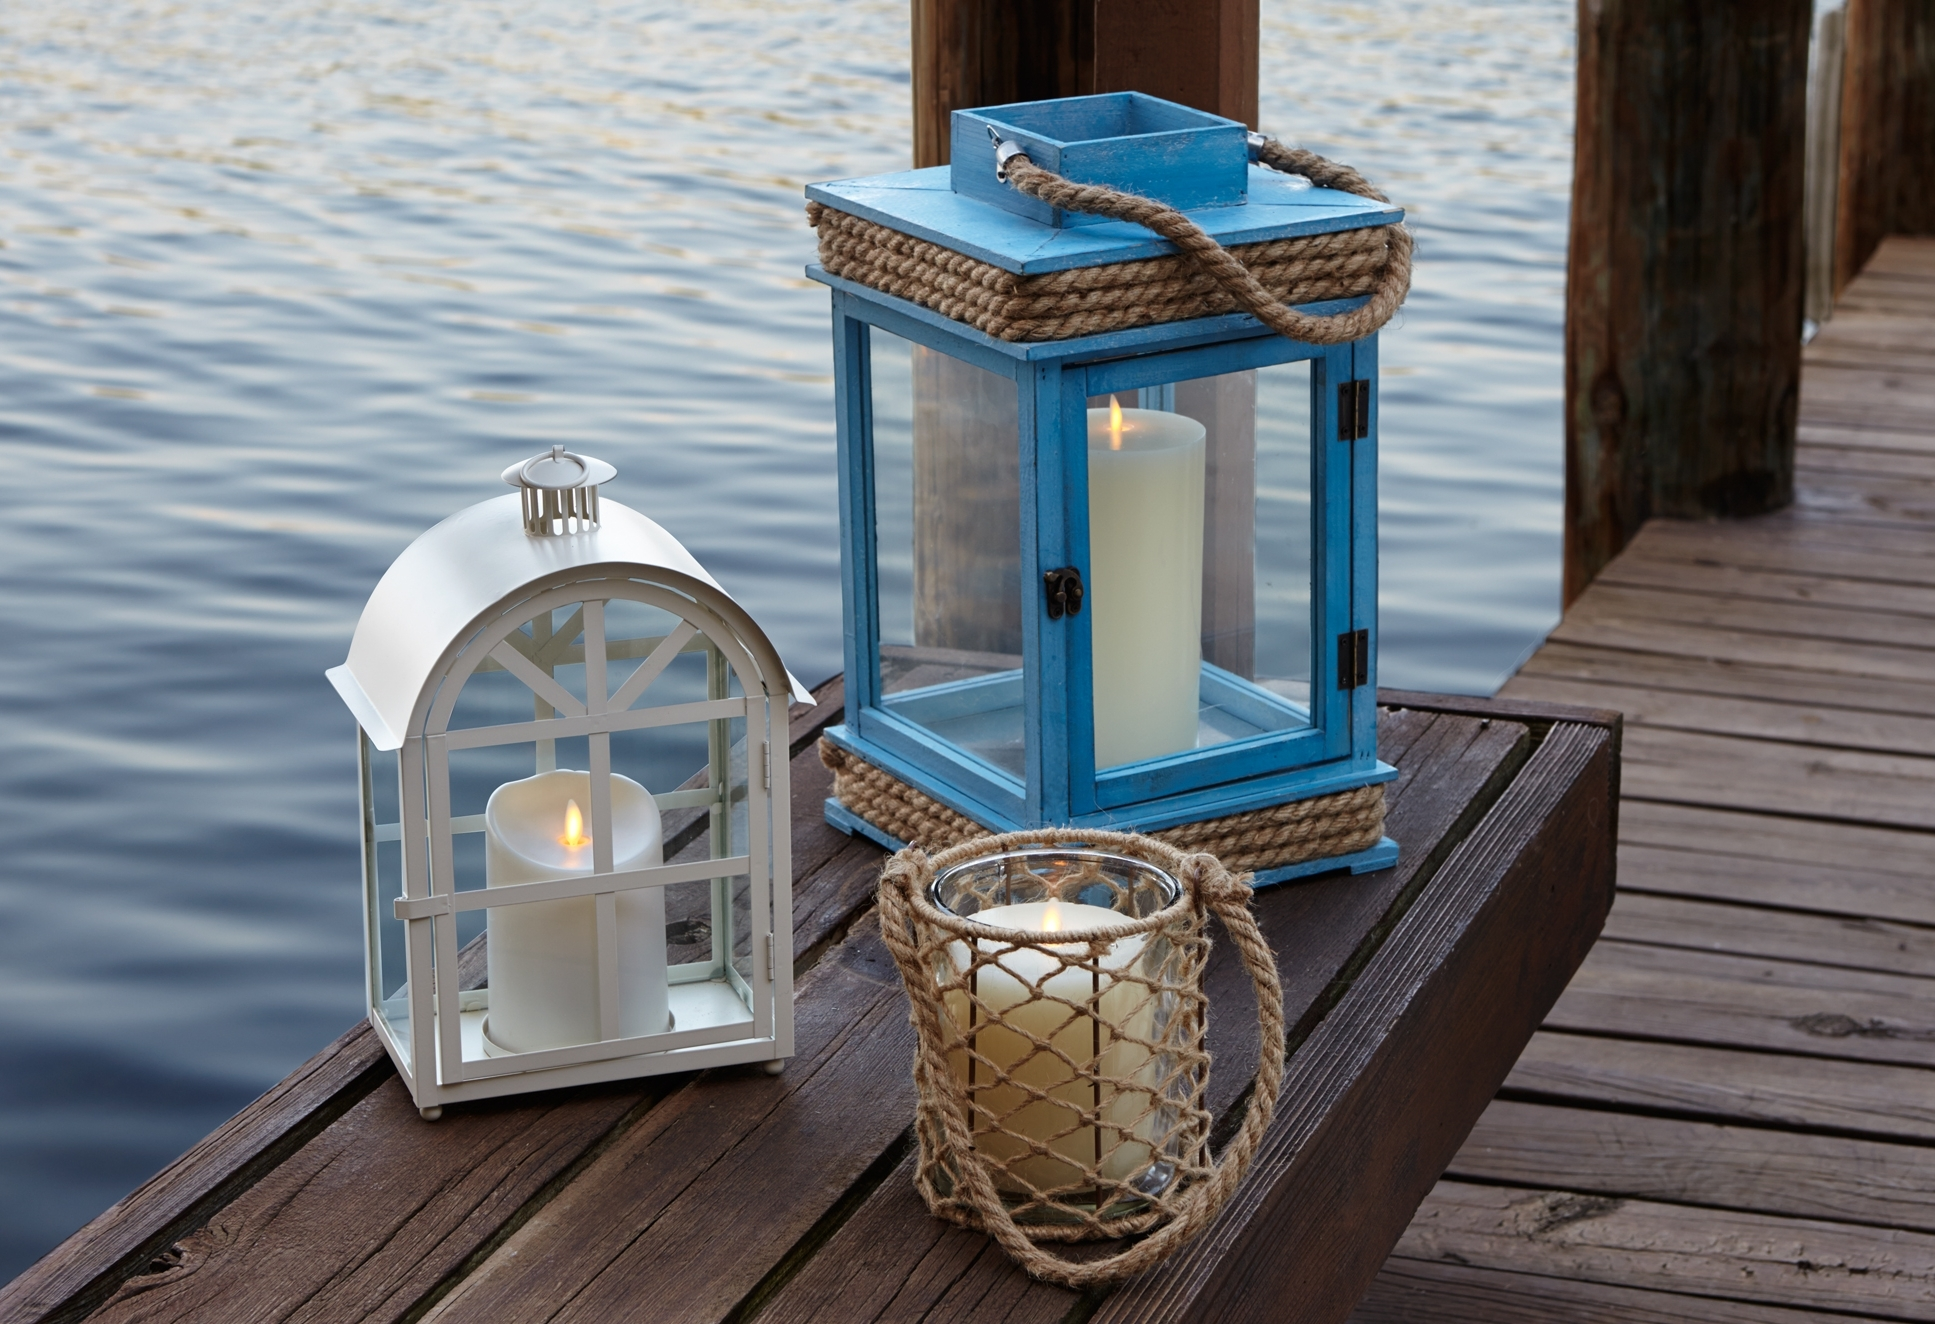 Luminara – Real Flame Effect Candles Throughout Most Up To Date Outdoor Luminara Lanterns (View 5 of 20)